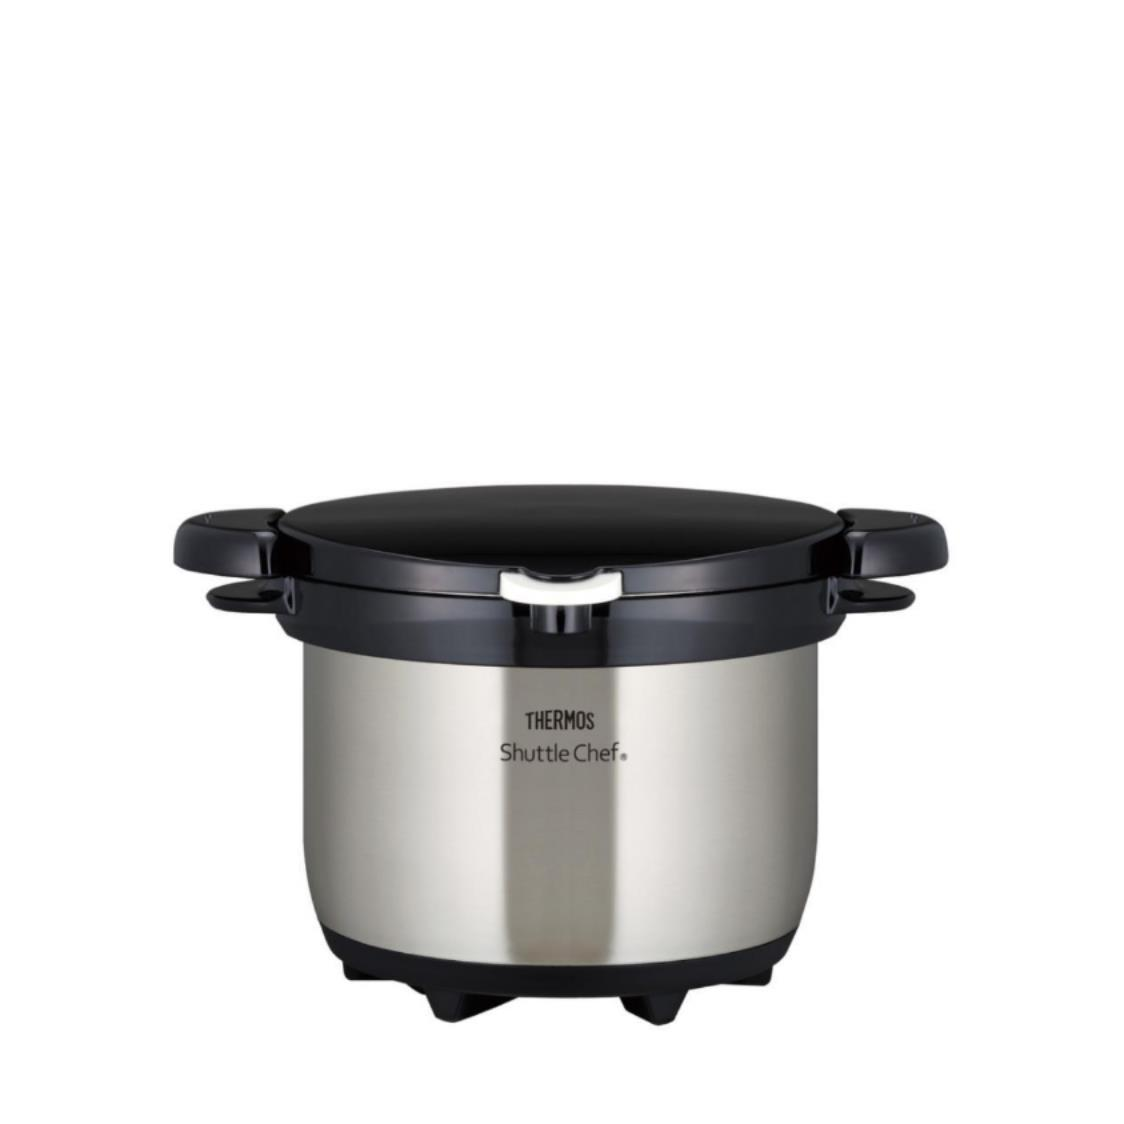 Stainless Steel Shuttle Chef Vacuum Insulated Thermal Cooker Clear Stainless 30L